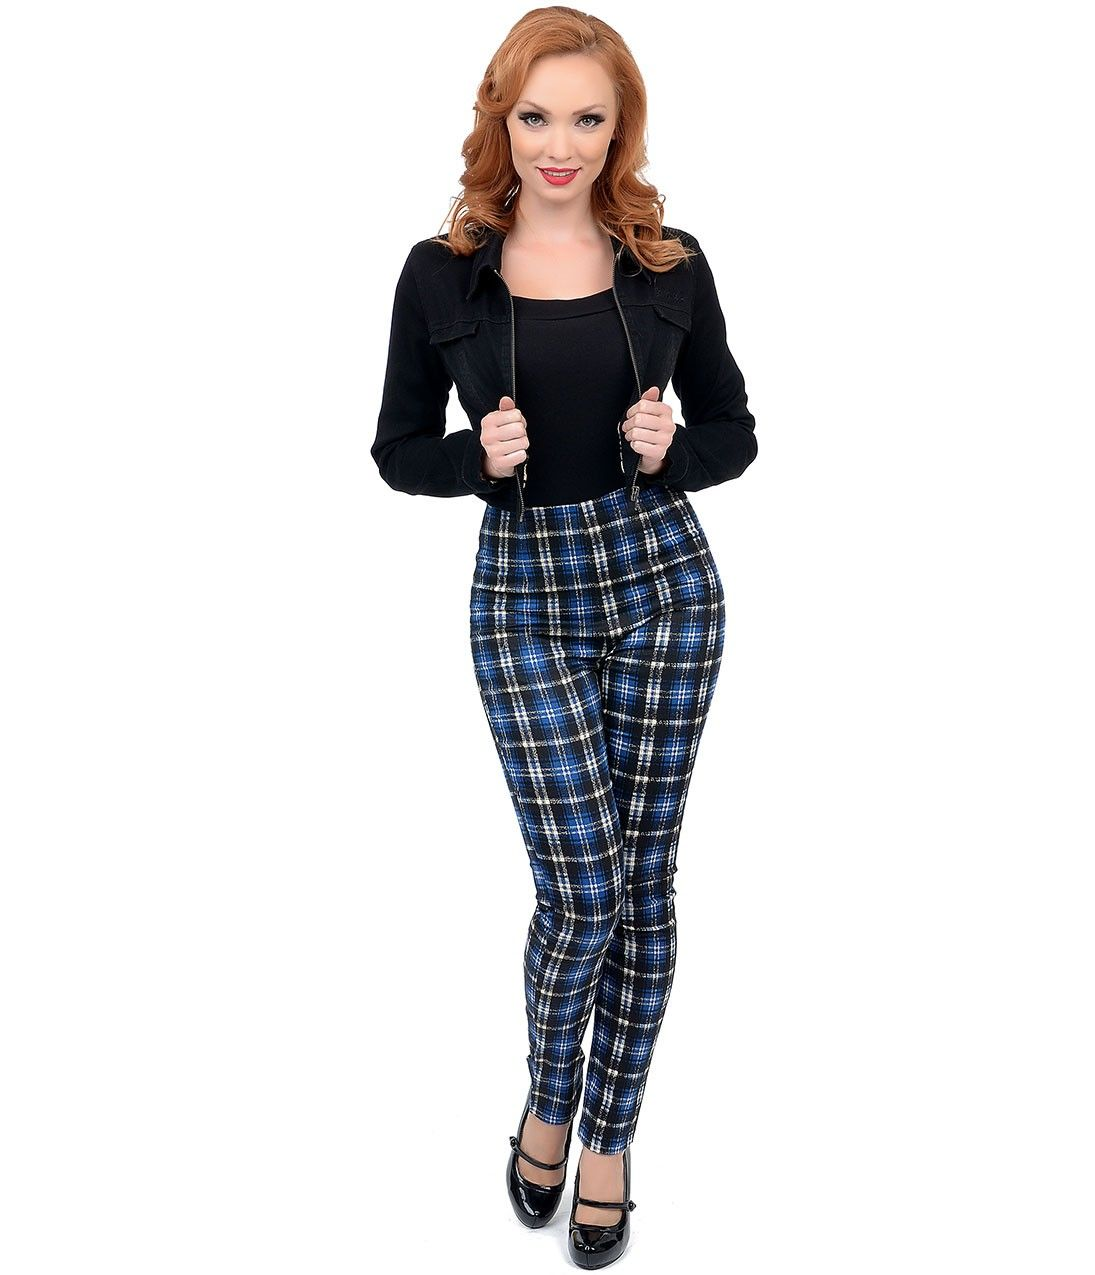 Blue & Black High Waisted Plaid Pants #uniquevintage | This ...